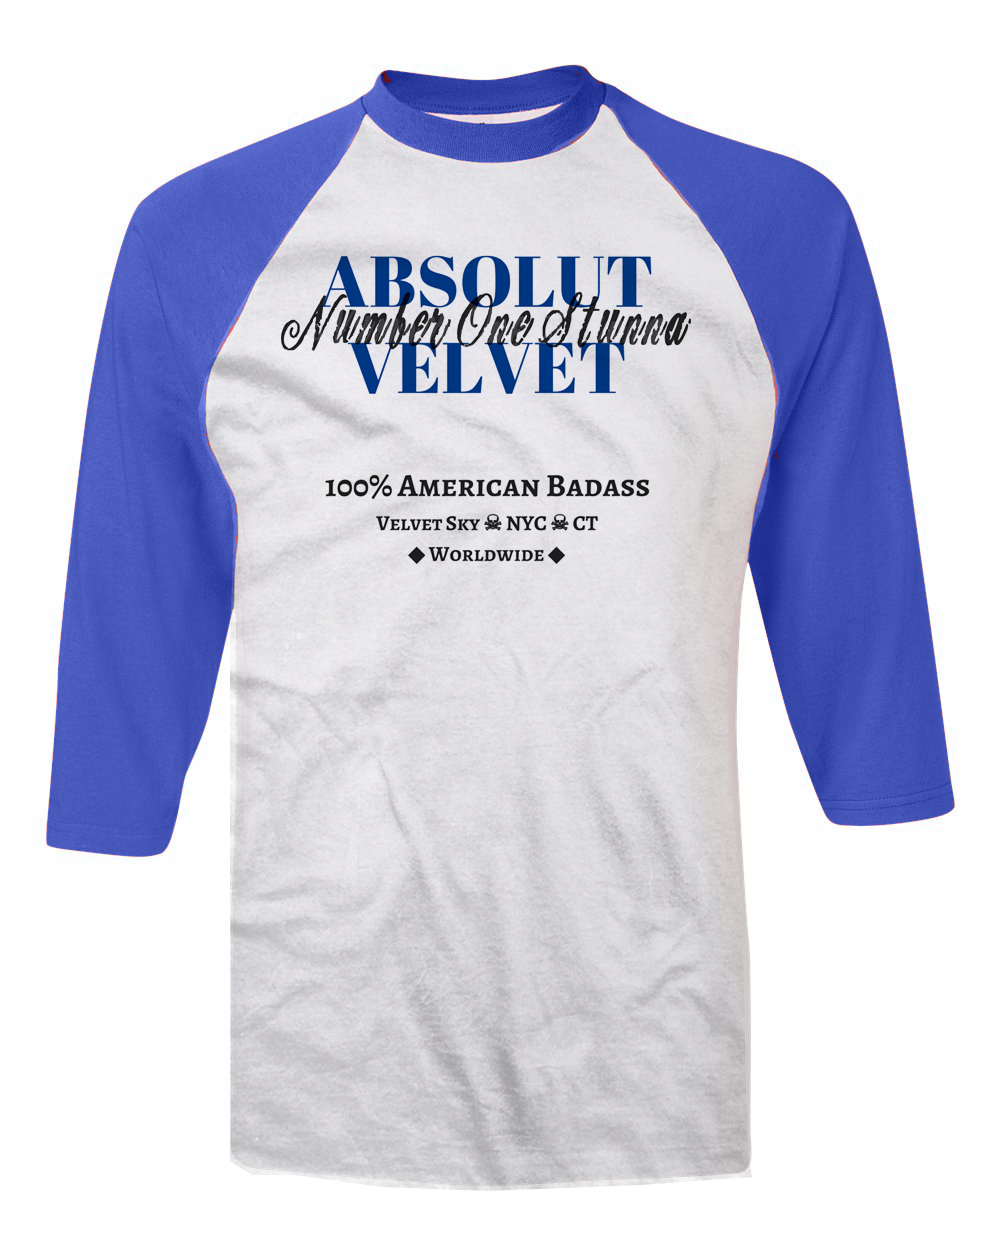 Absolut Velvet T-shirt